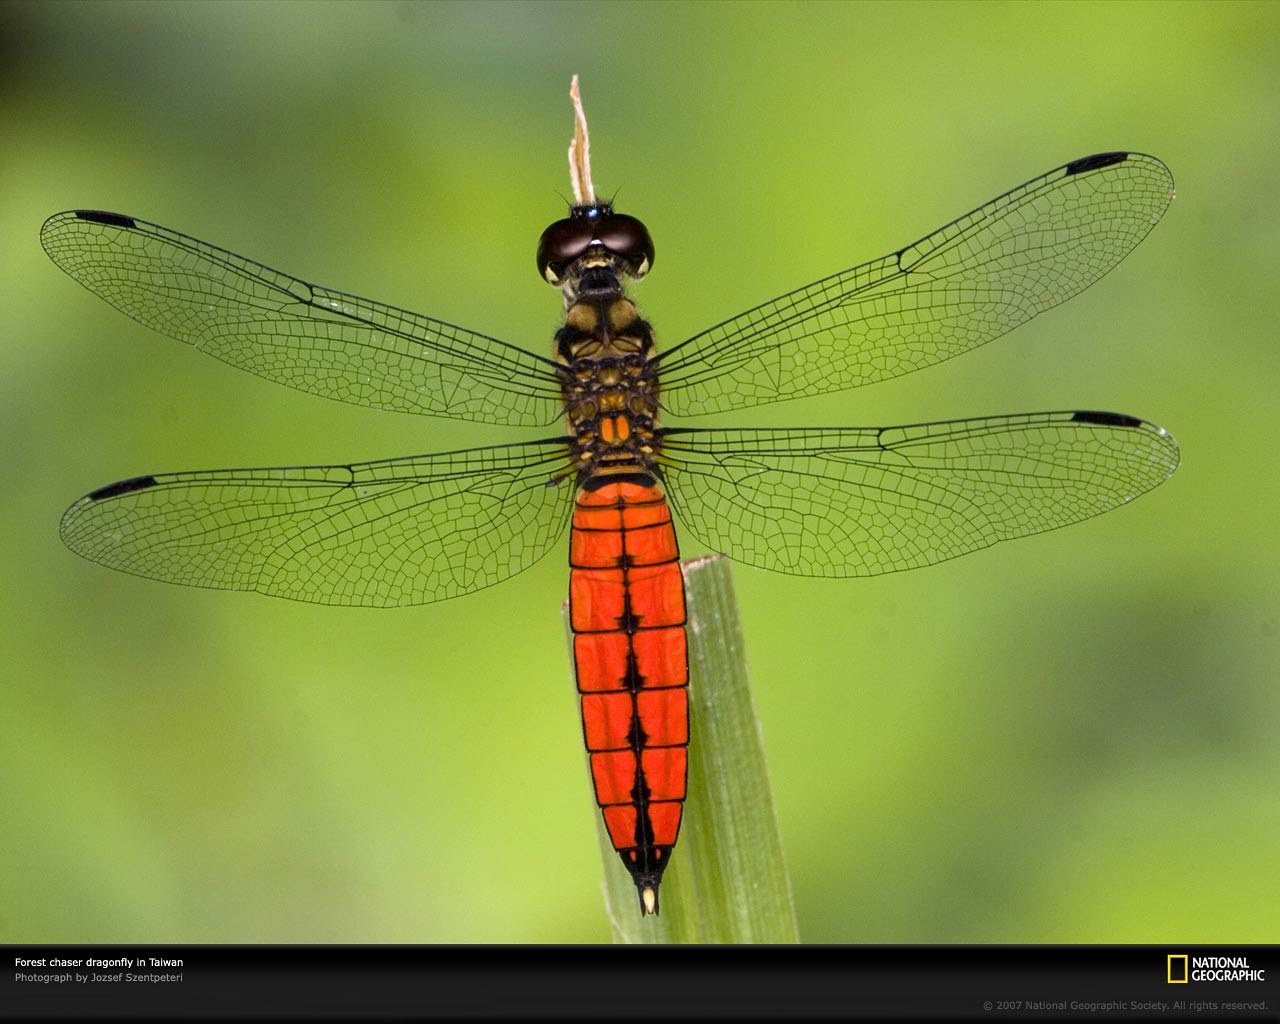 Dragonfly-HD-Backgrounds-×-Dragonfly-Ad-wallpaper-wp3804901